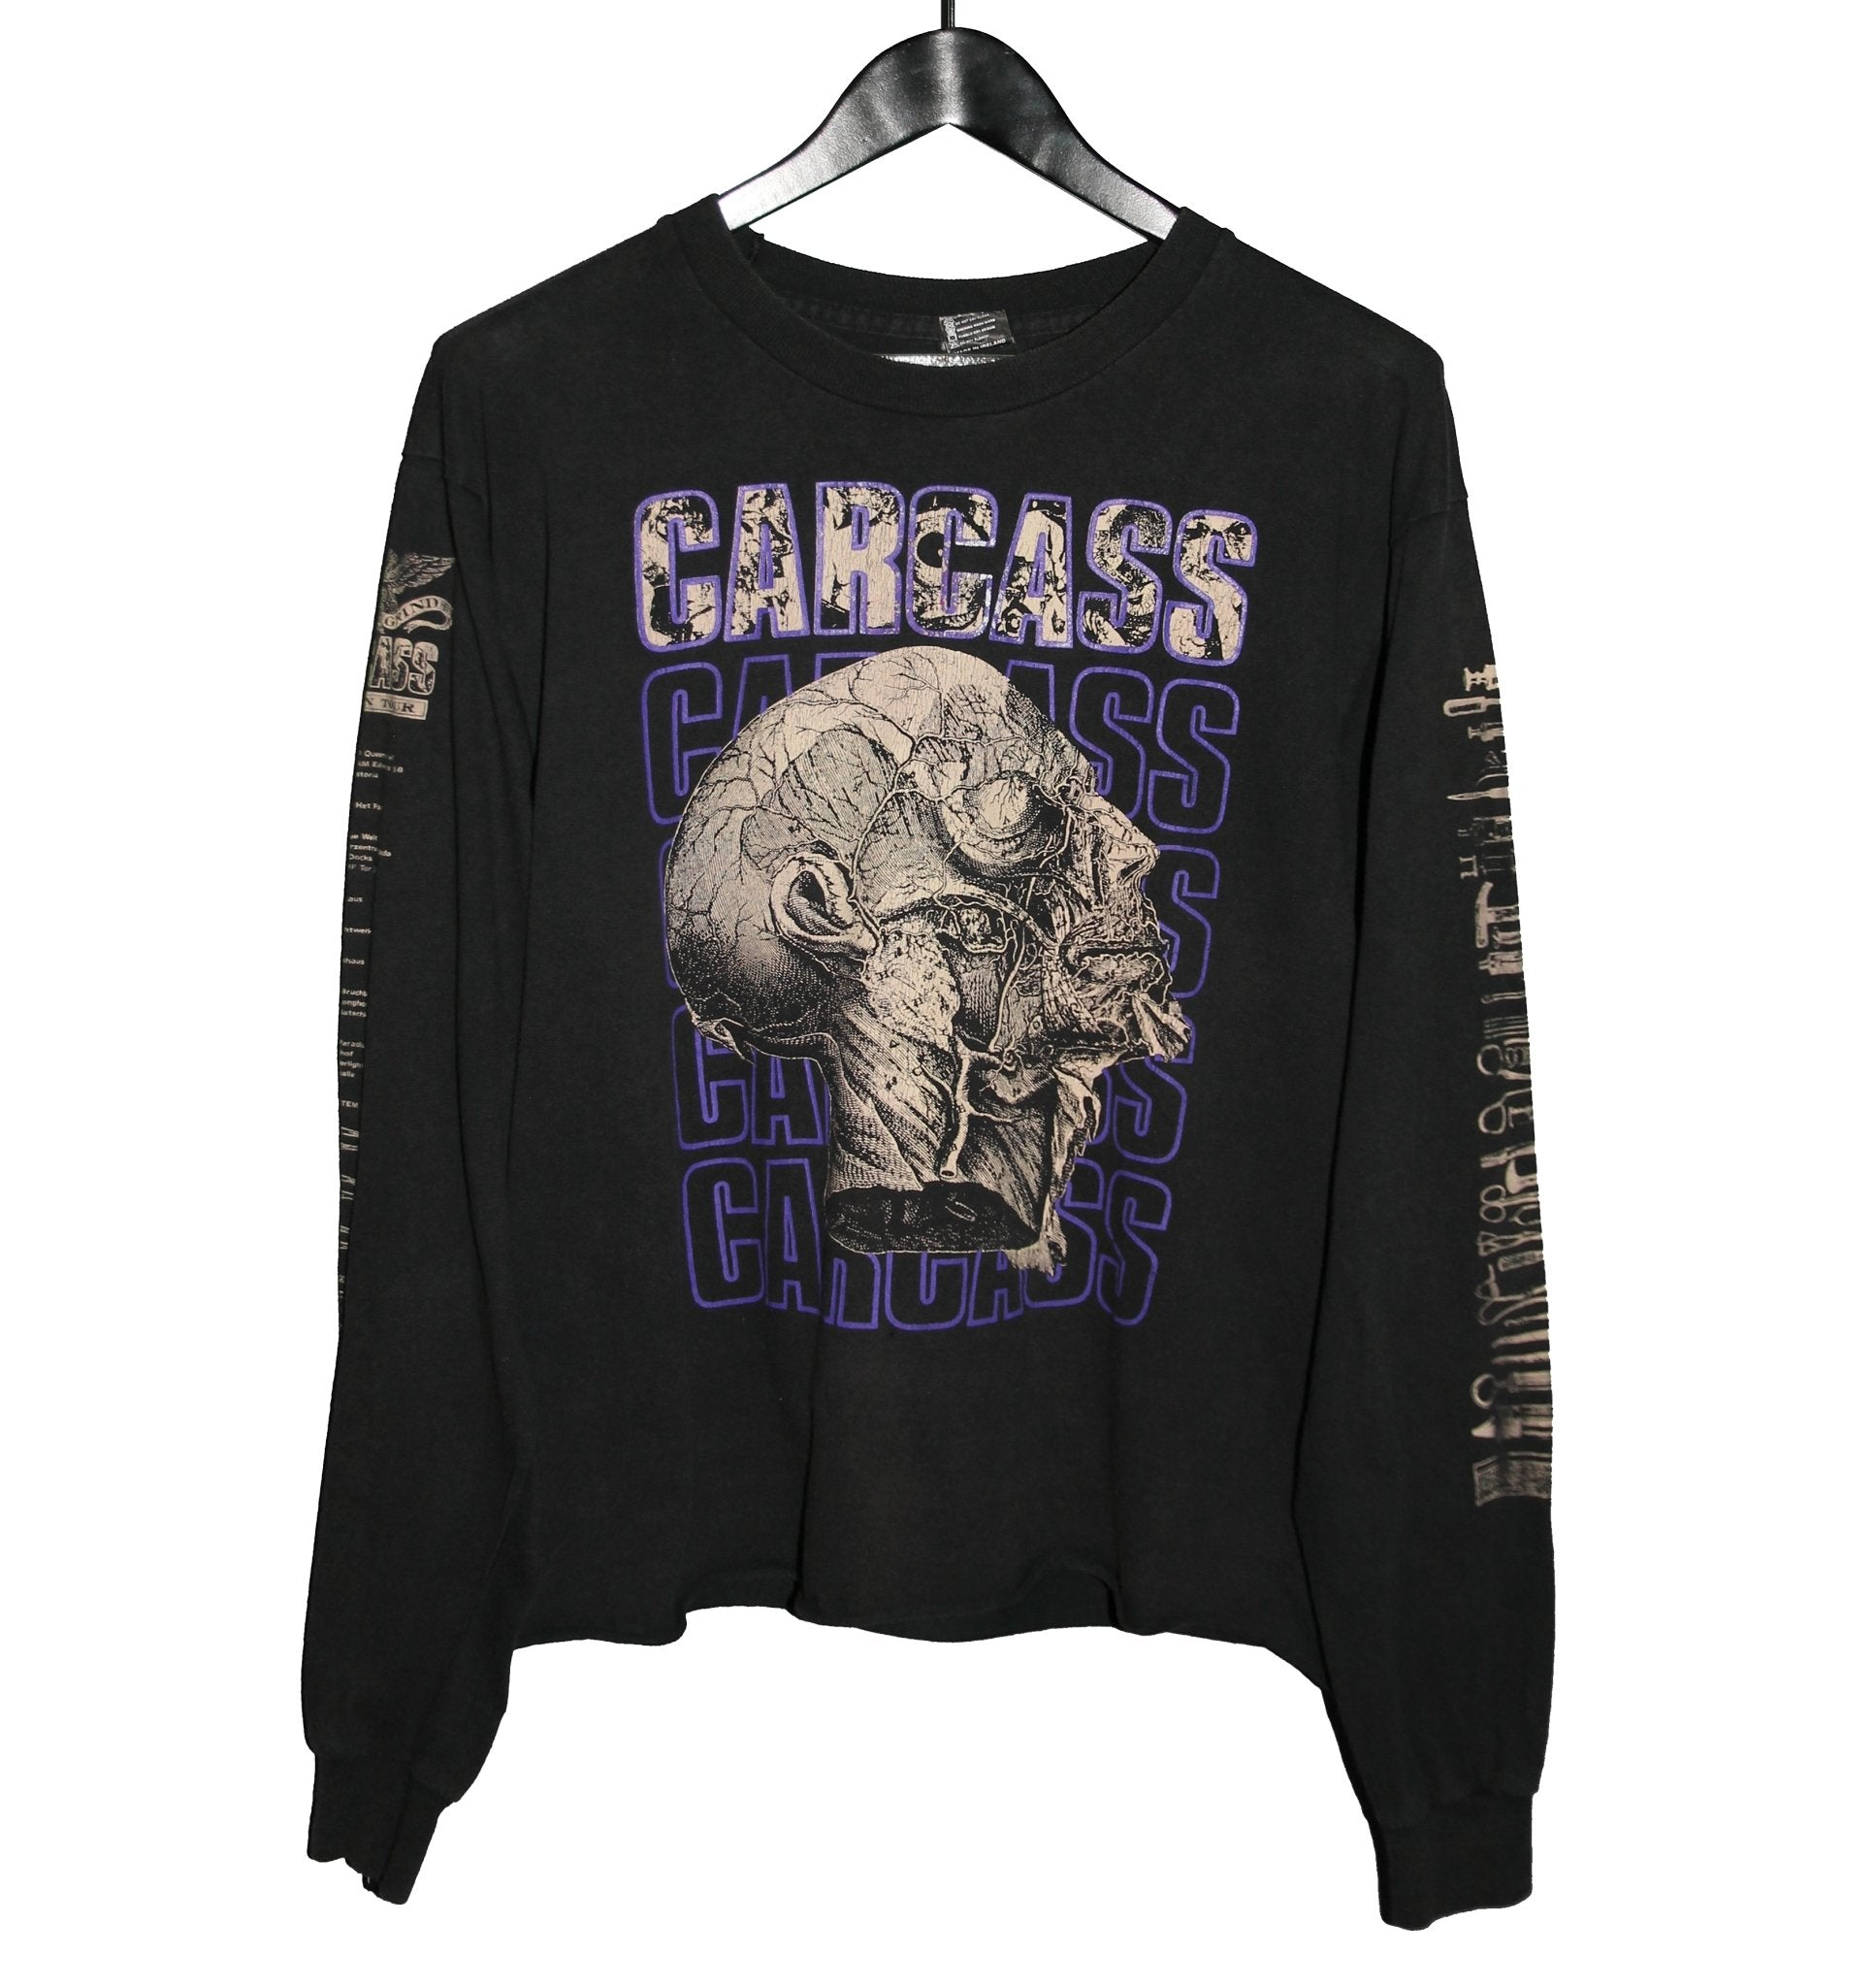 Carcass 1992 Tour Longsleeve - Faded AU